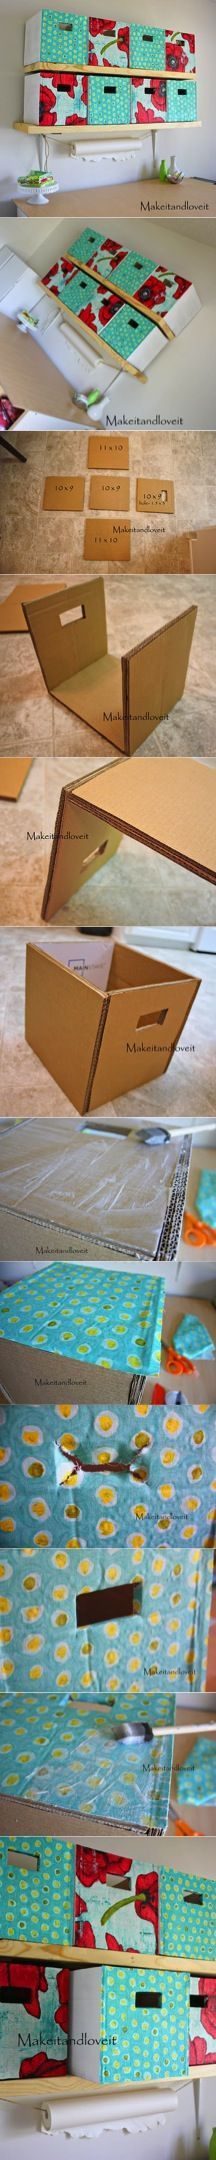 Craft Room, Part 1 (covered cardboard storage boxes):